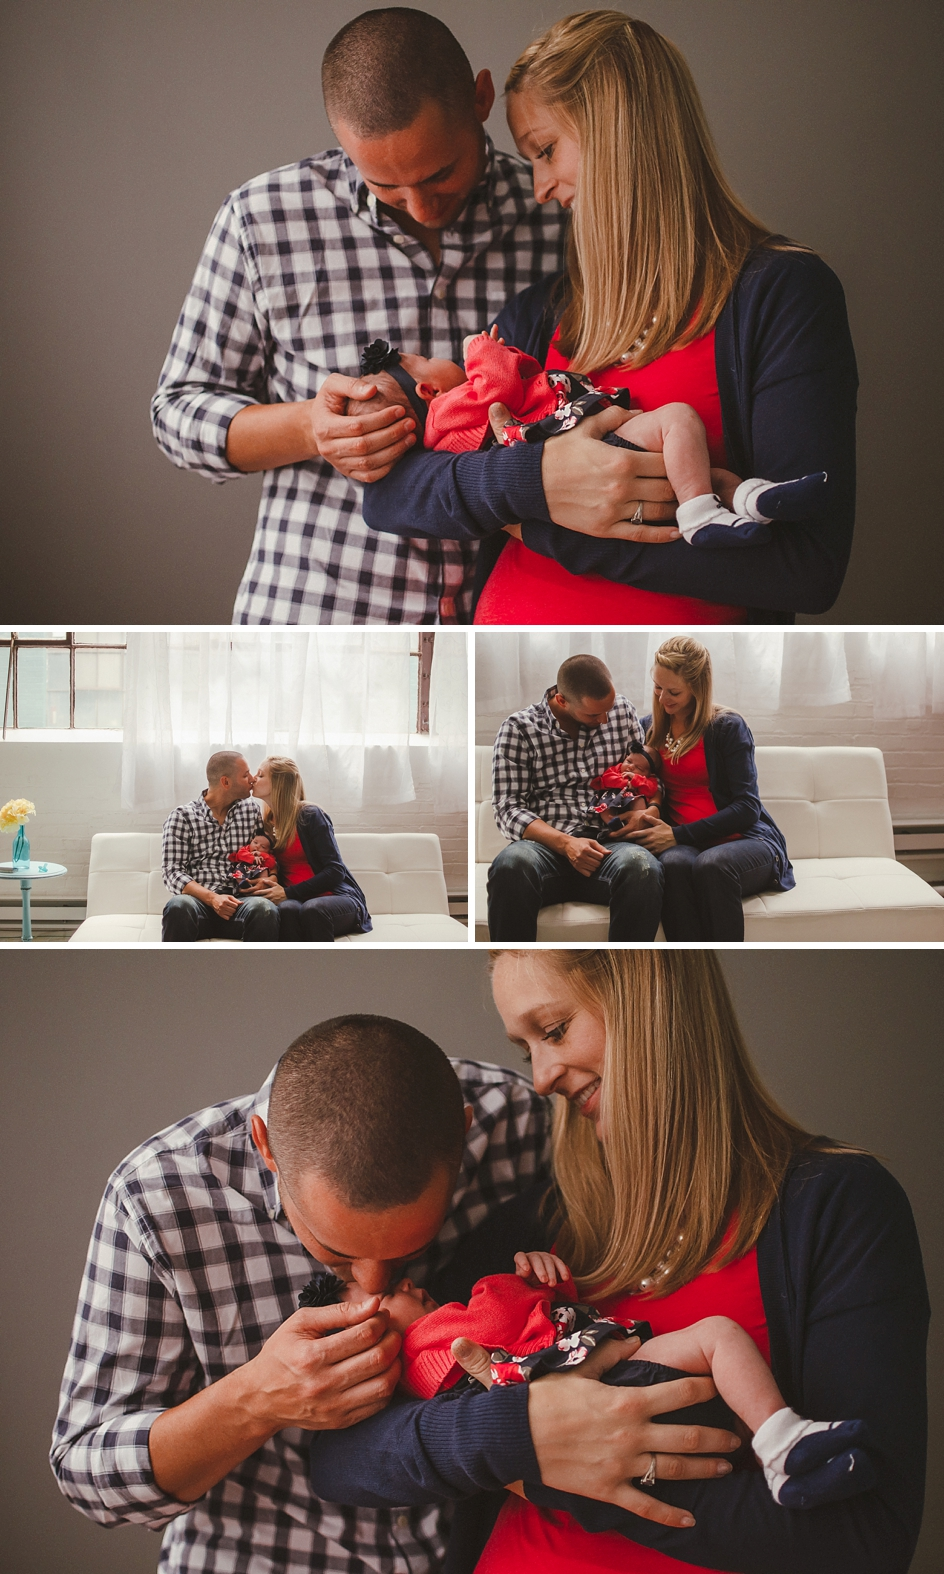 indianapolis-newborn-photographer_0024.jpg